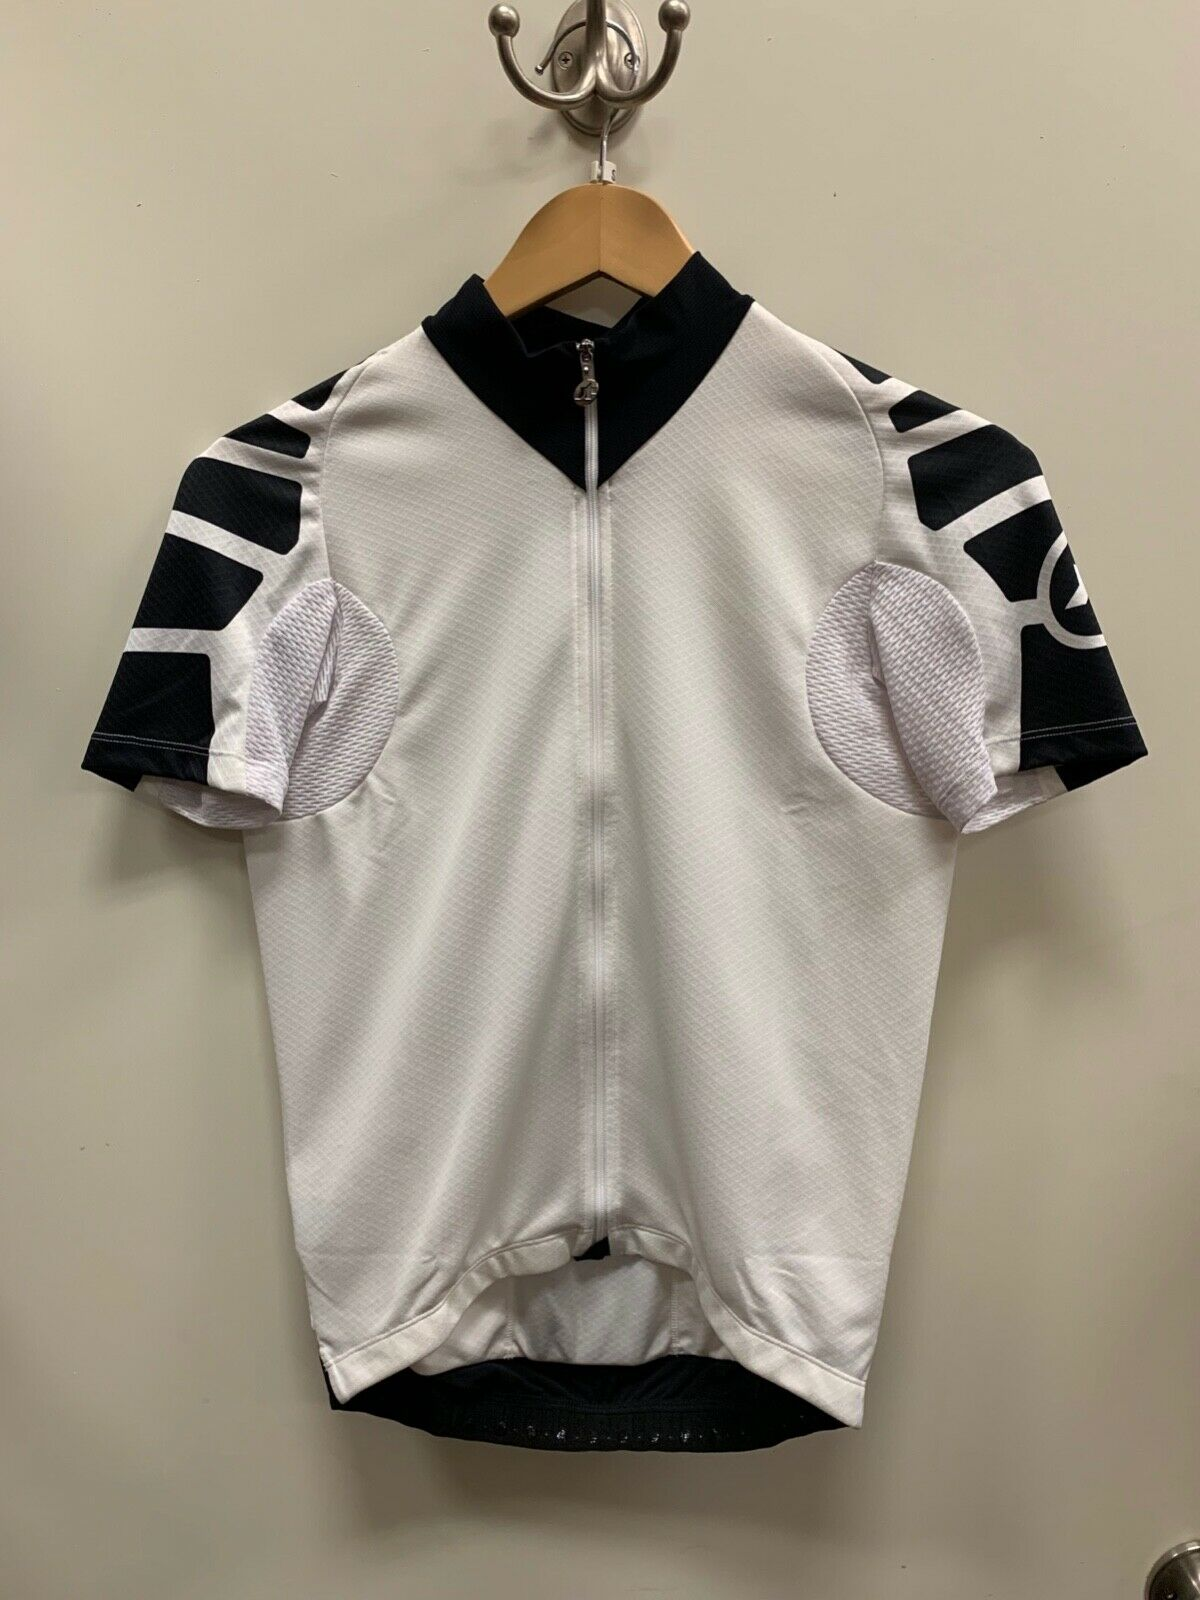 NEW  Assos SS.UNO_S7 short sleeve jersey White Small  order now with big discount & free delivery